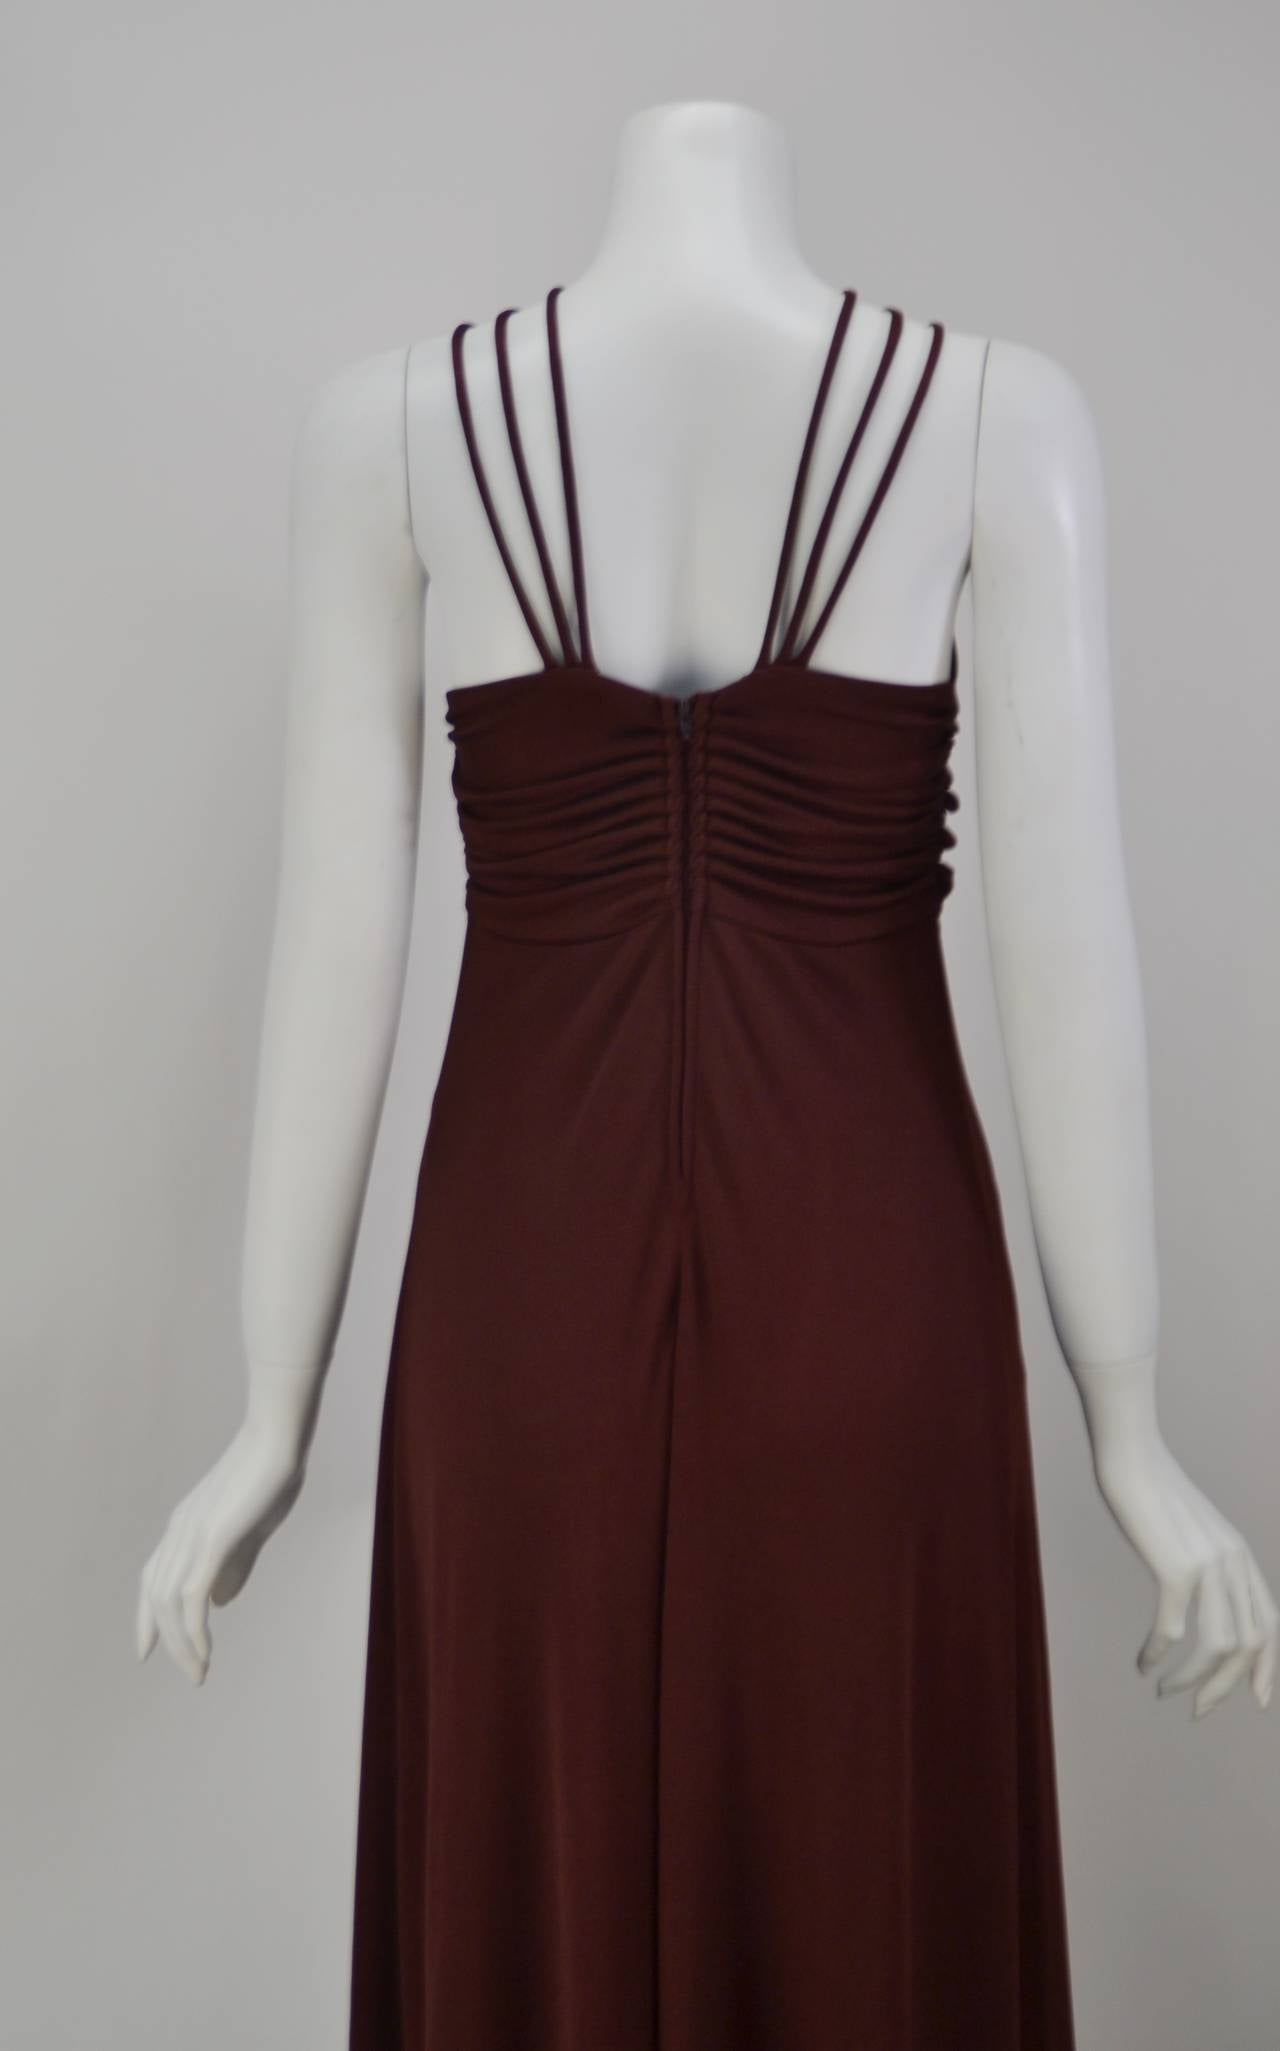 1970s Joy Stevens Criss Cross Strap Dress In Excellent Condition For Sale In Houston, TX